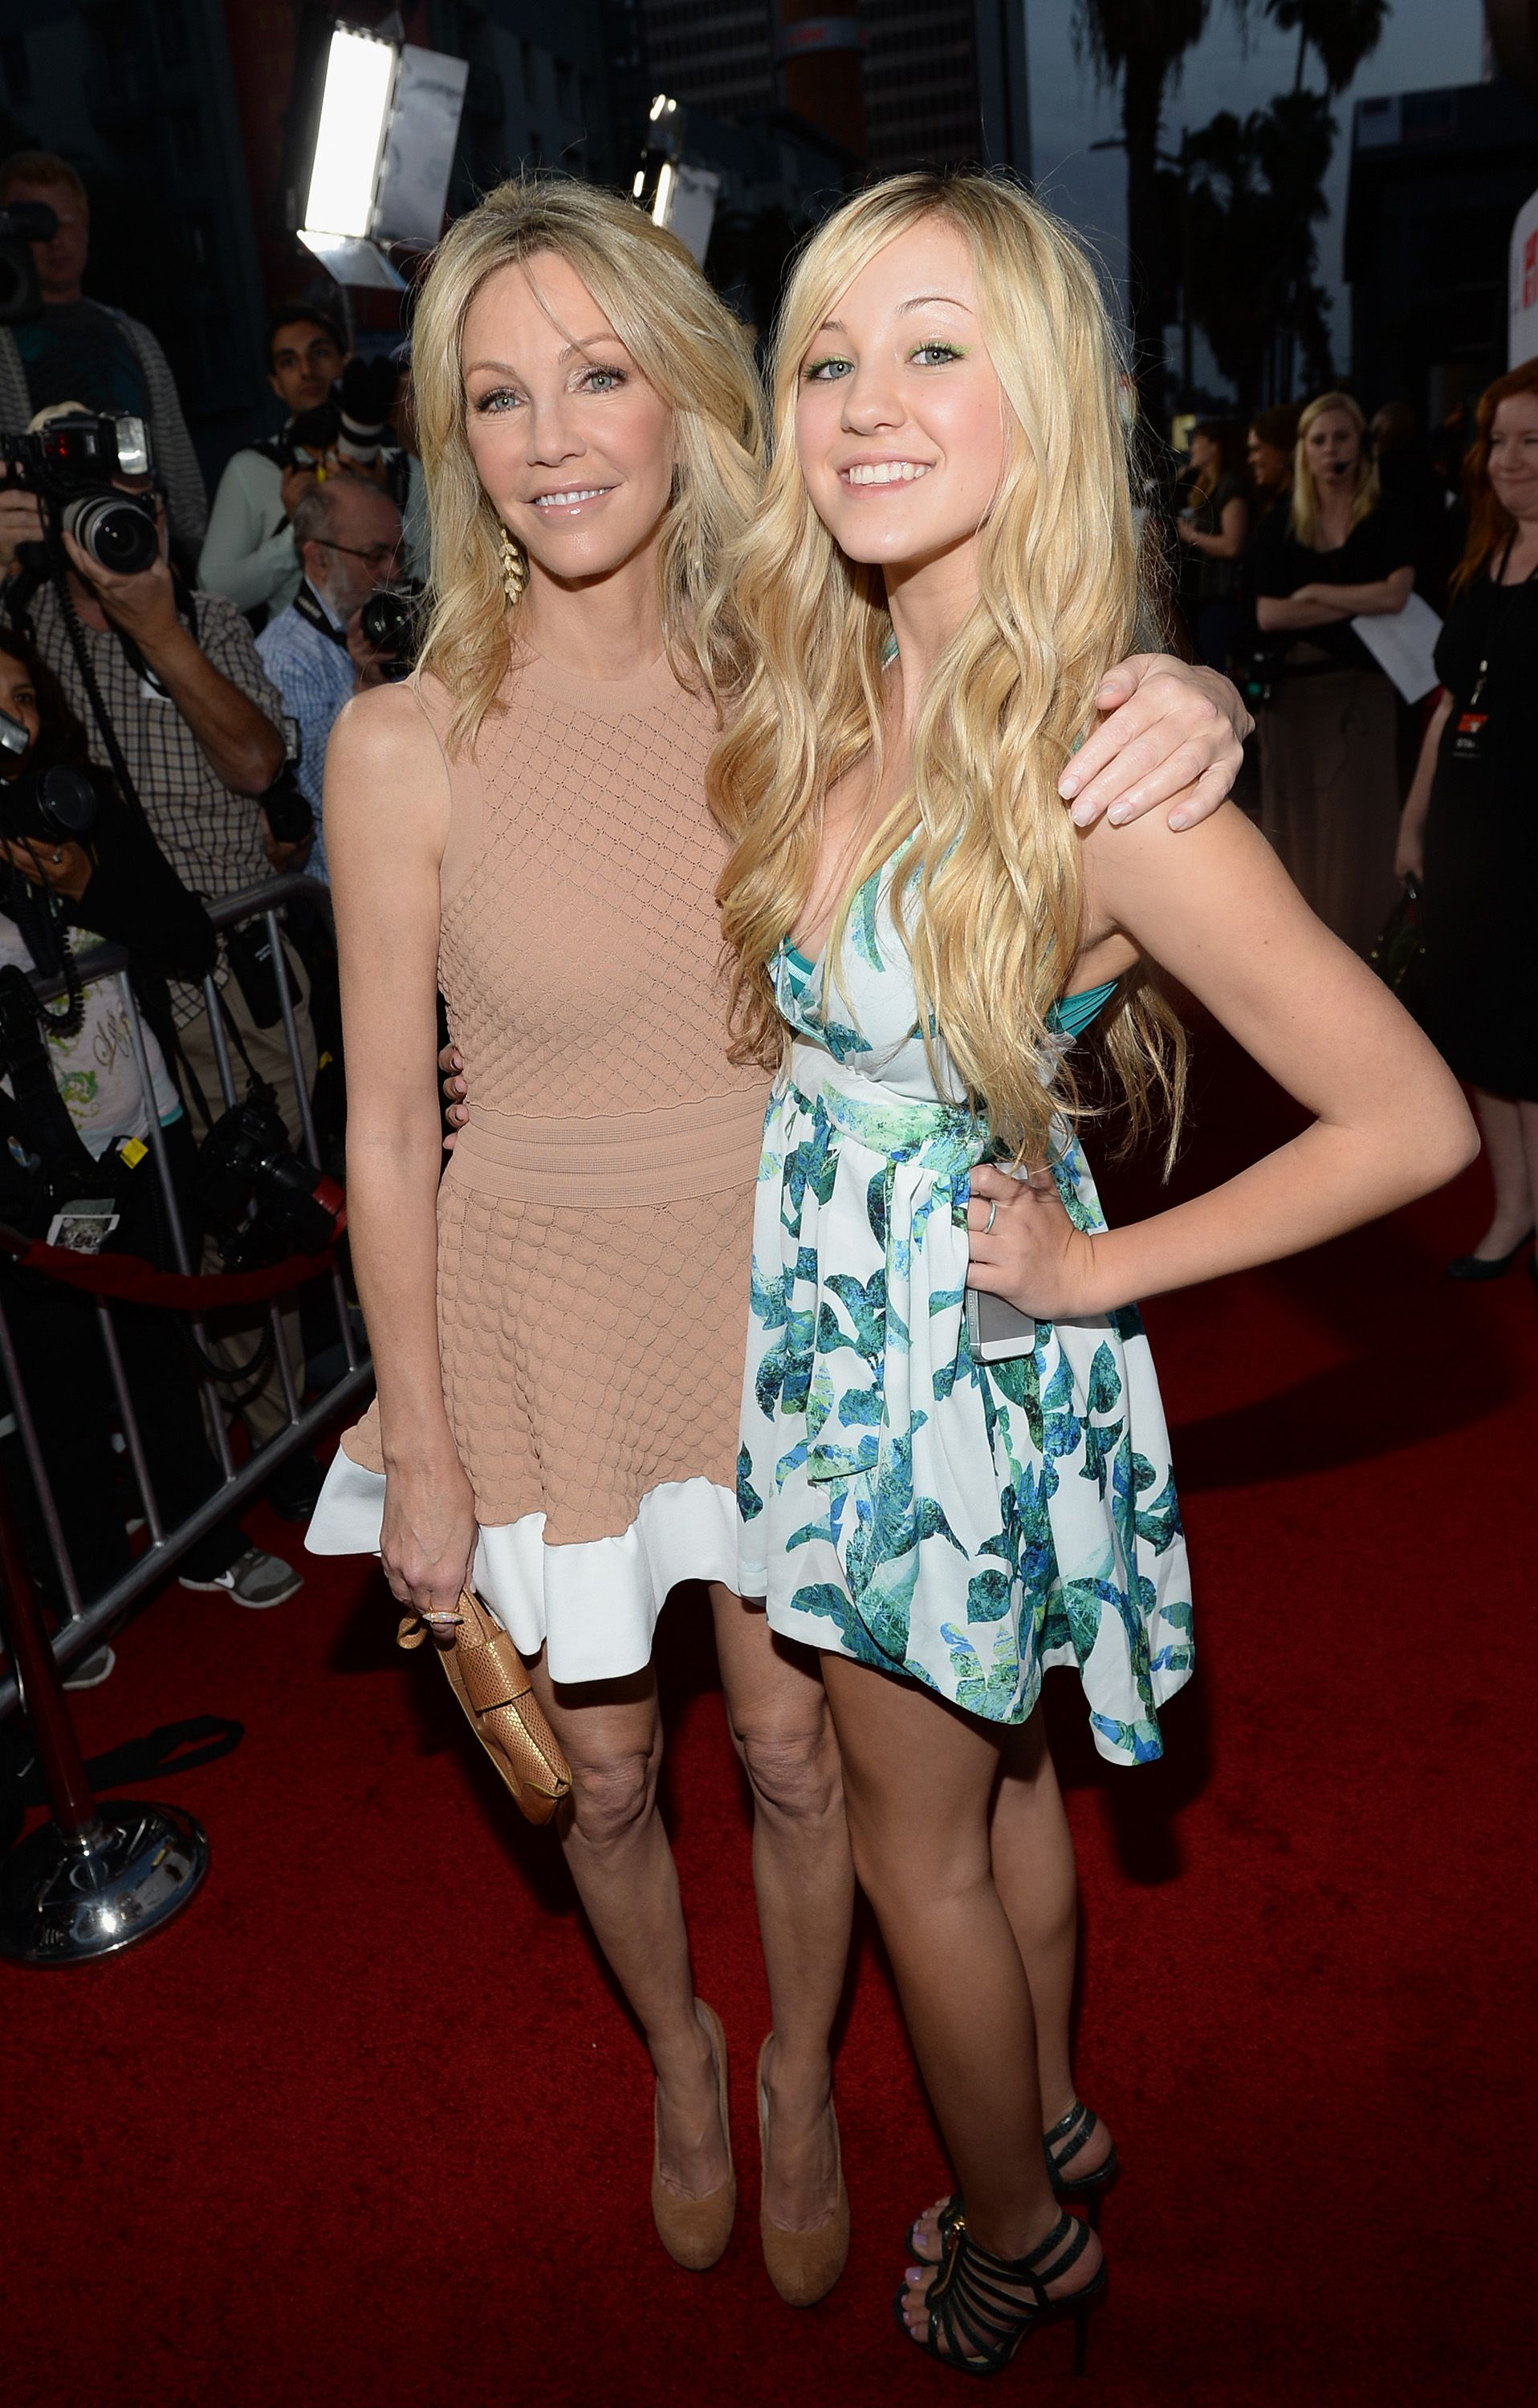 """Heather Locklear and Ava Sambora at the premiere of """"Scary Movie 5"""" on April 11, 2013, in Hollywood, California 